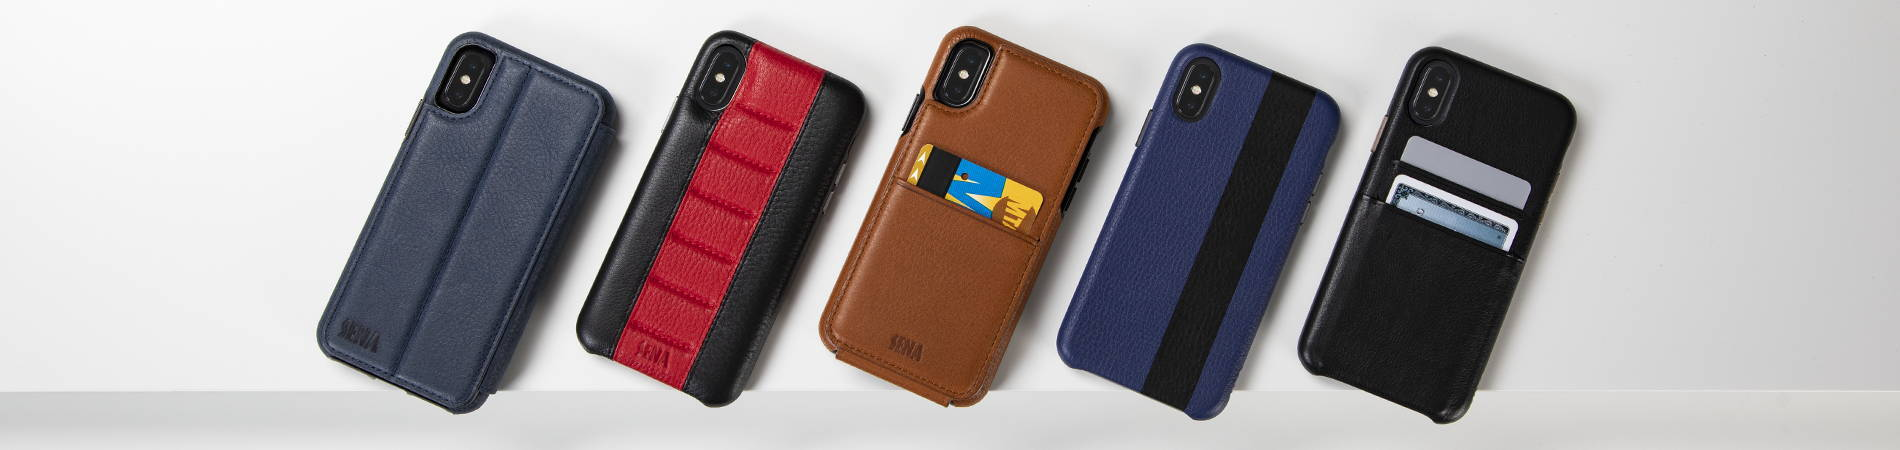 Leather Phone Cases Styles from SENA Cases